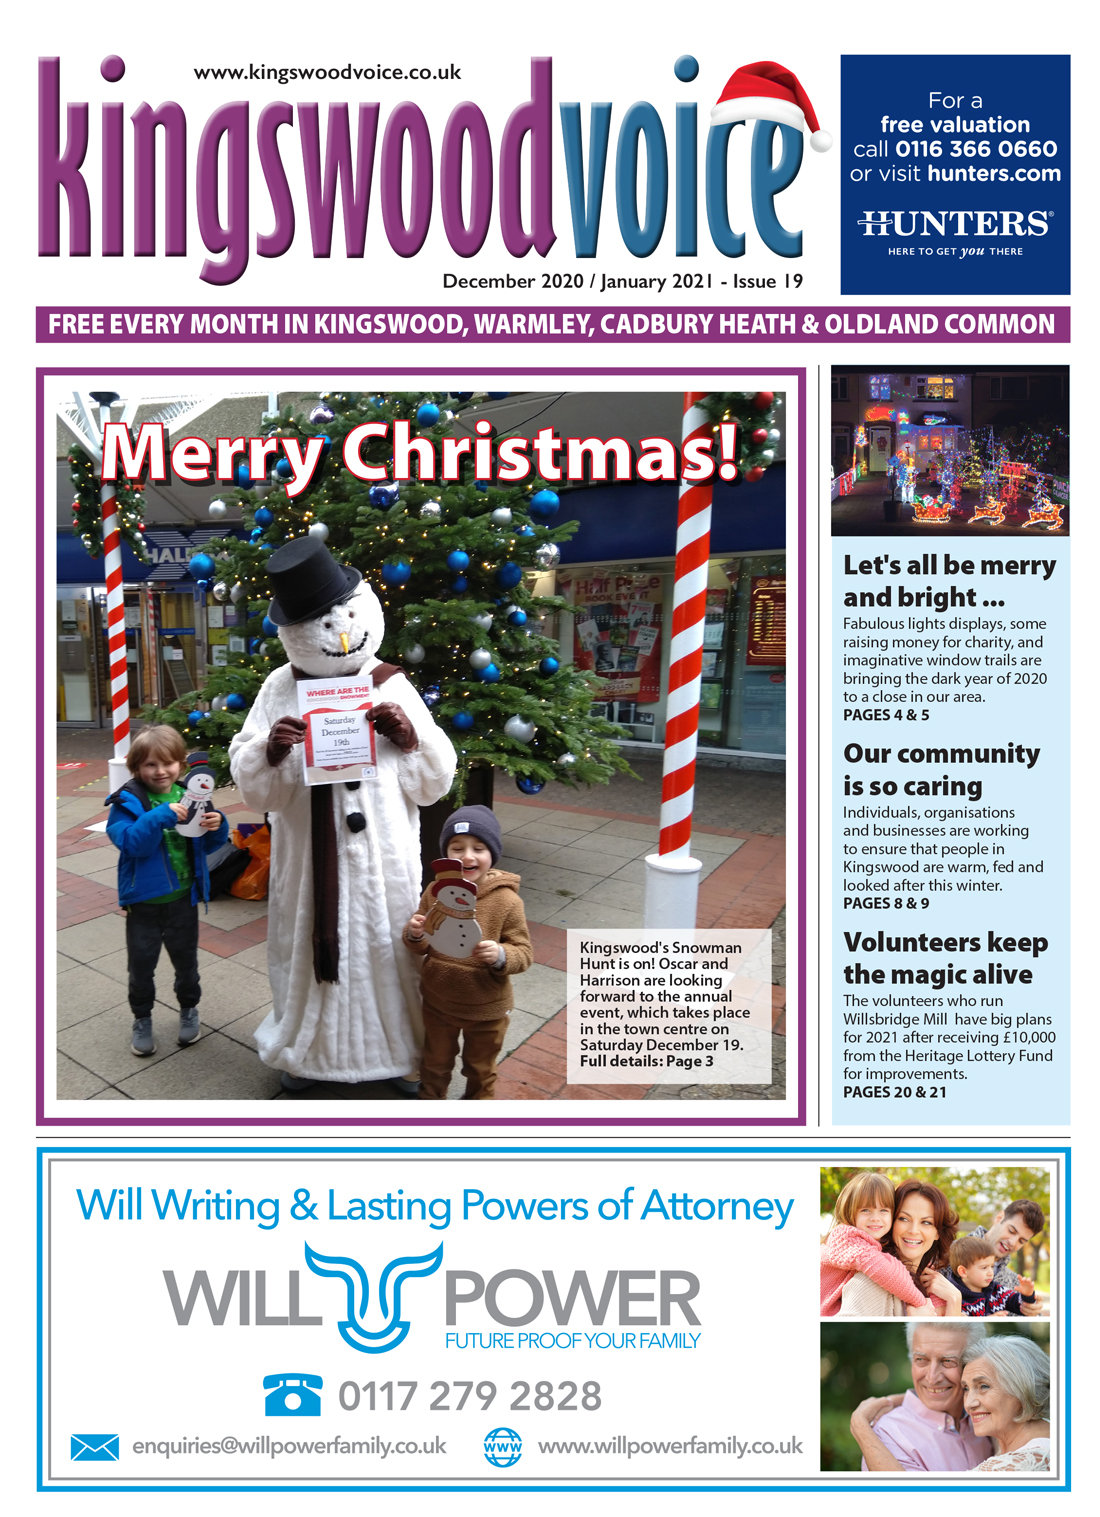 Kingswood Voice December 2020 / January 2021